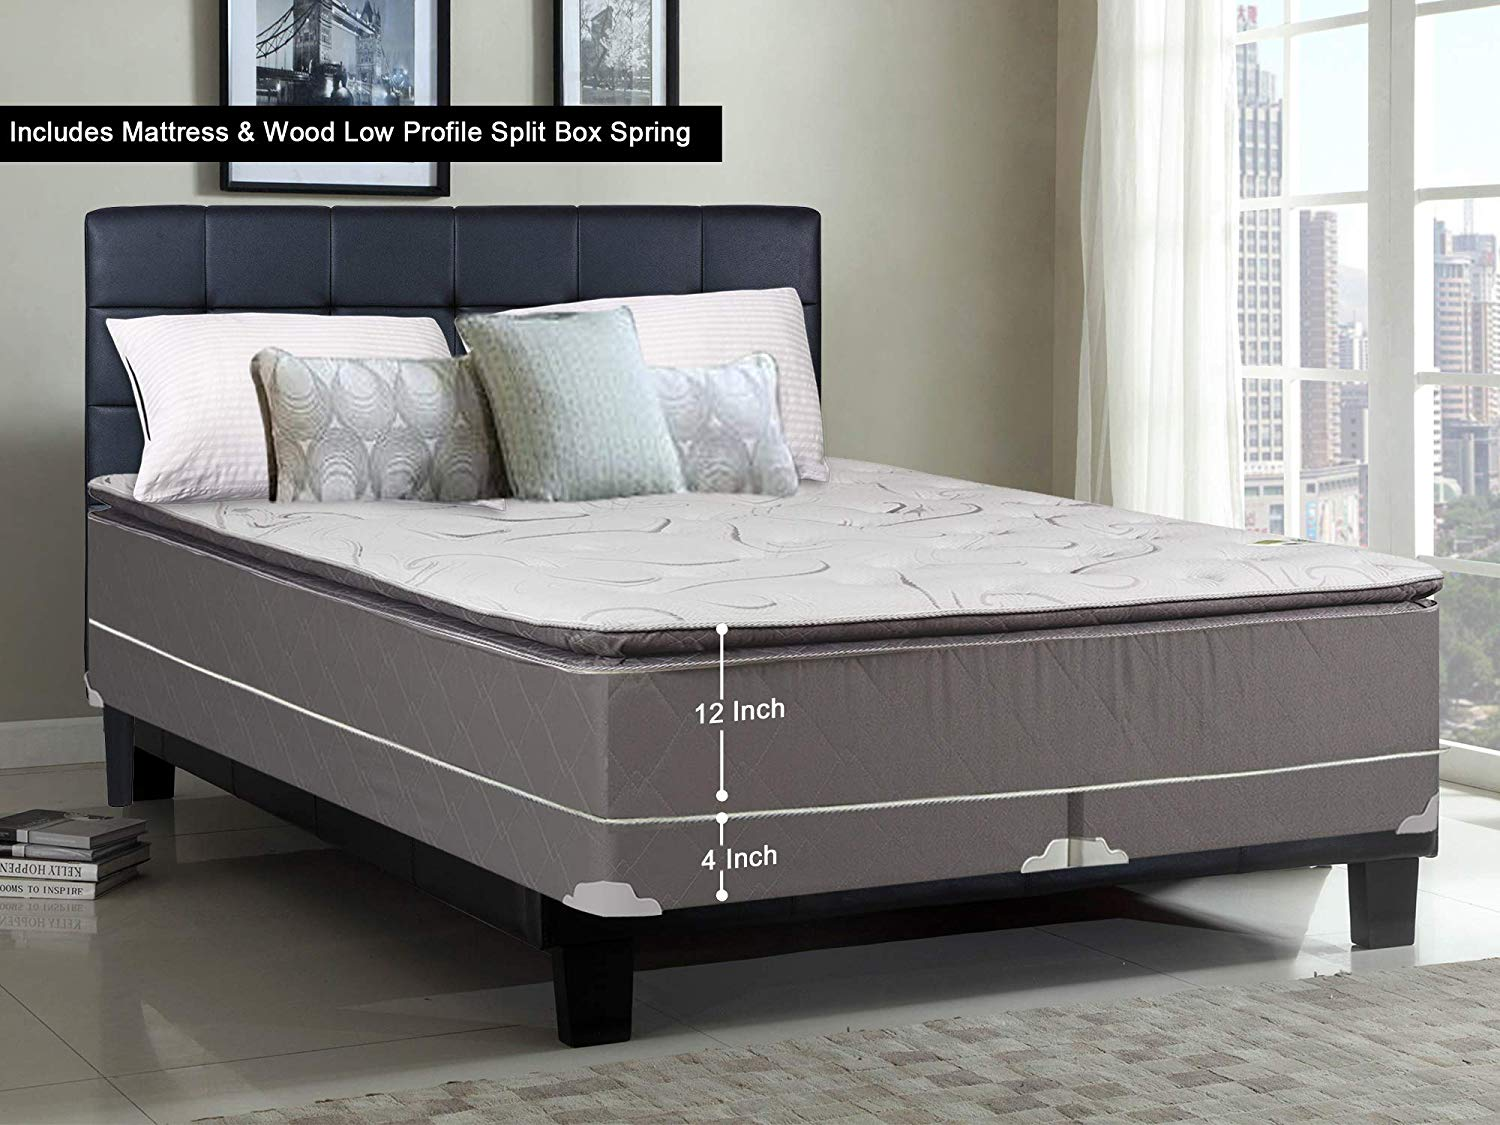 Greaton 9040v-6/0-2LP Fully Assembled Soft Pillow Top Innerspring Mattress and 4-inch Wood Box Spring/Foundation Set |California King Size| Mink, Color